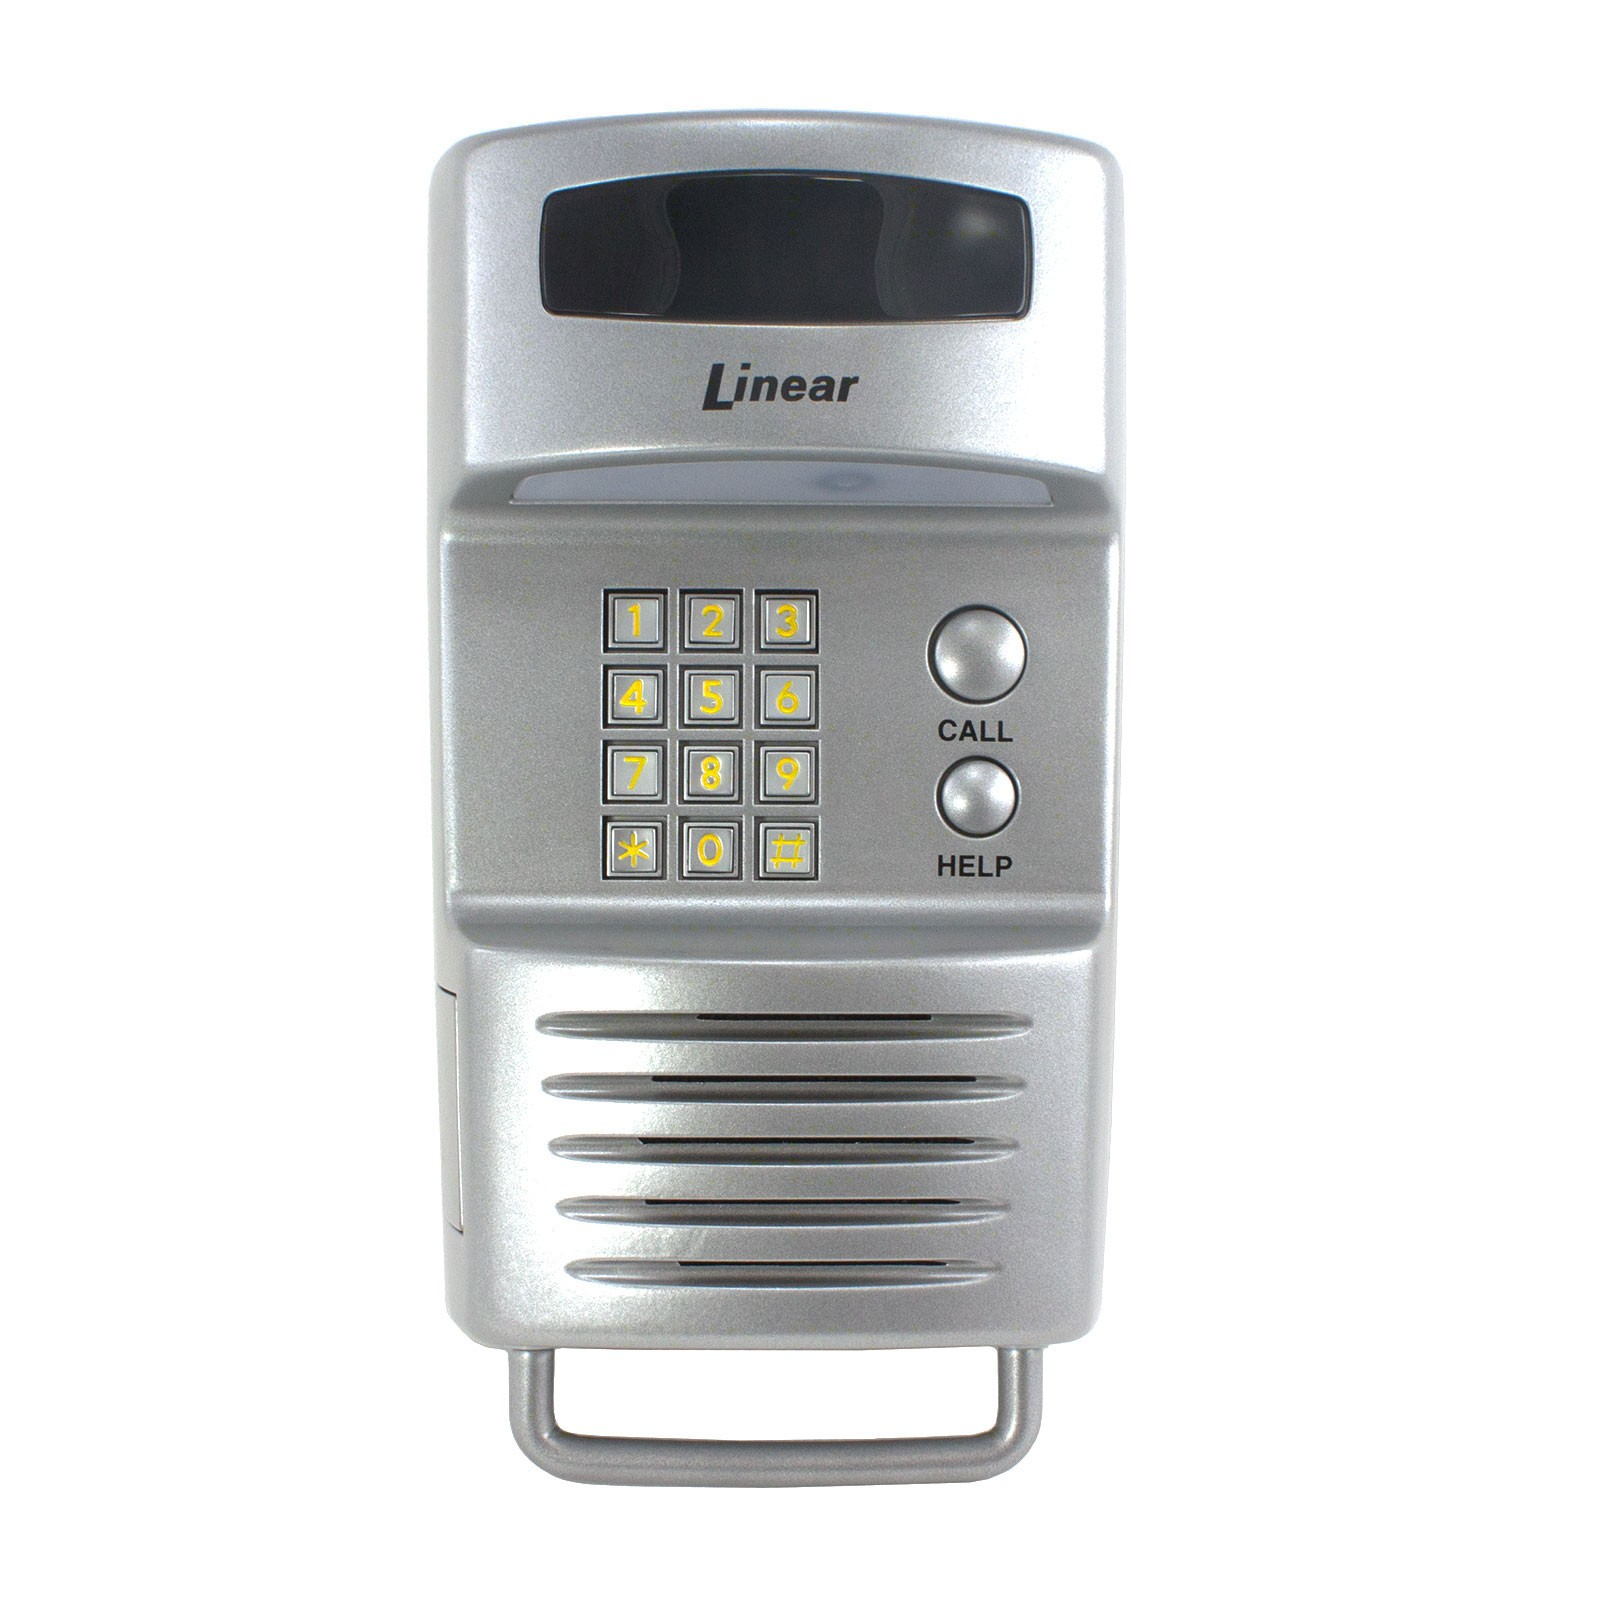 Linear Residential Telephone Entry System Stainless Steel Re 1ss